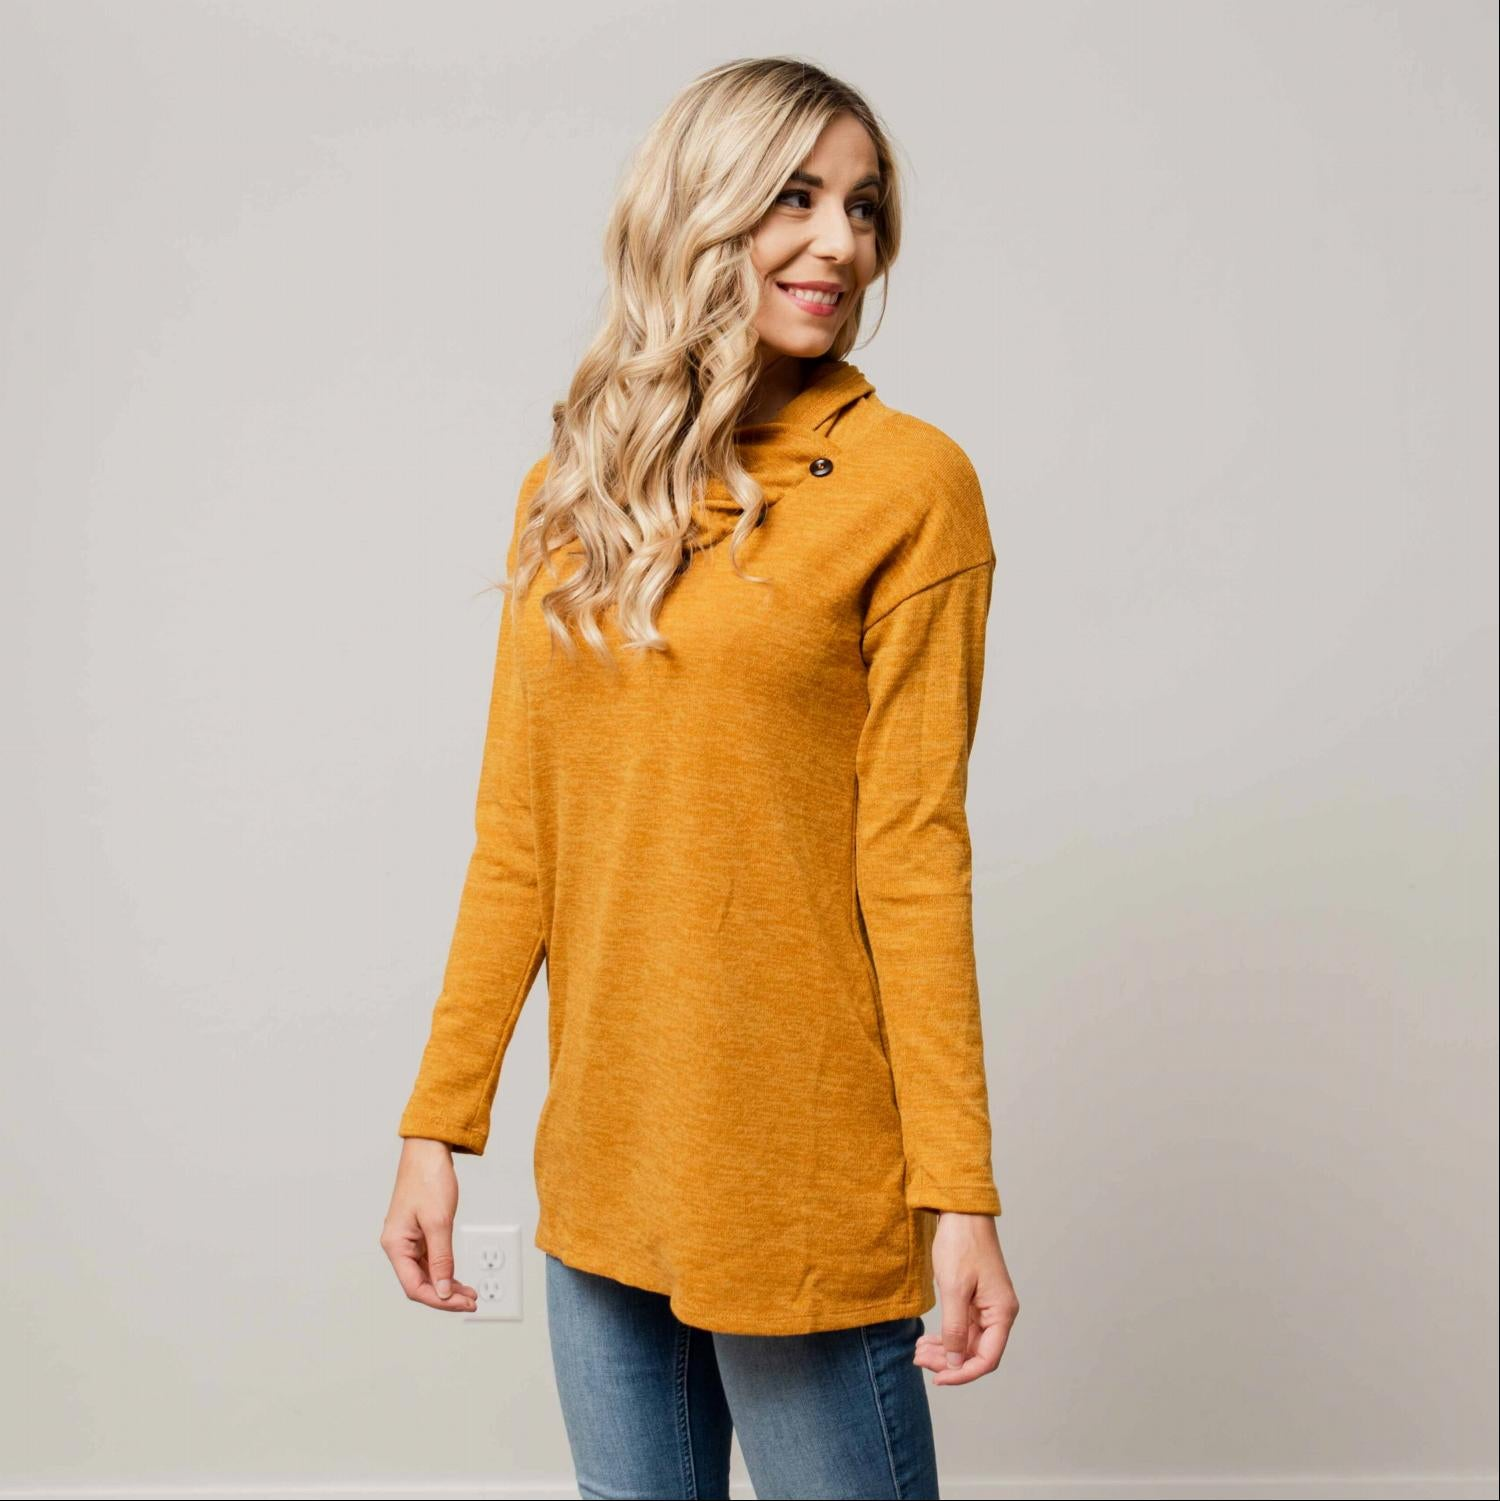 Mustard Cowl Mock Neck Long Sleeve Tunic Top With Pockets And Button Trim